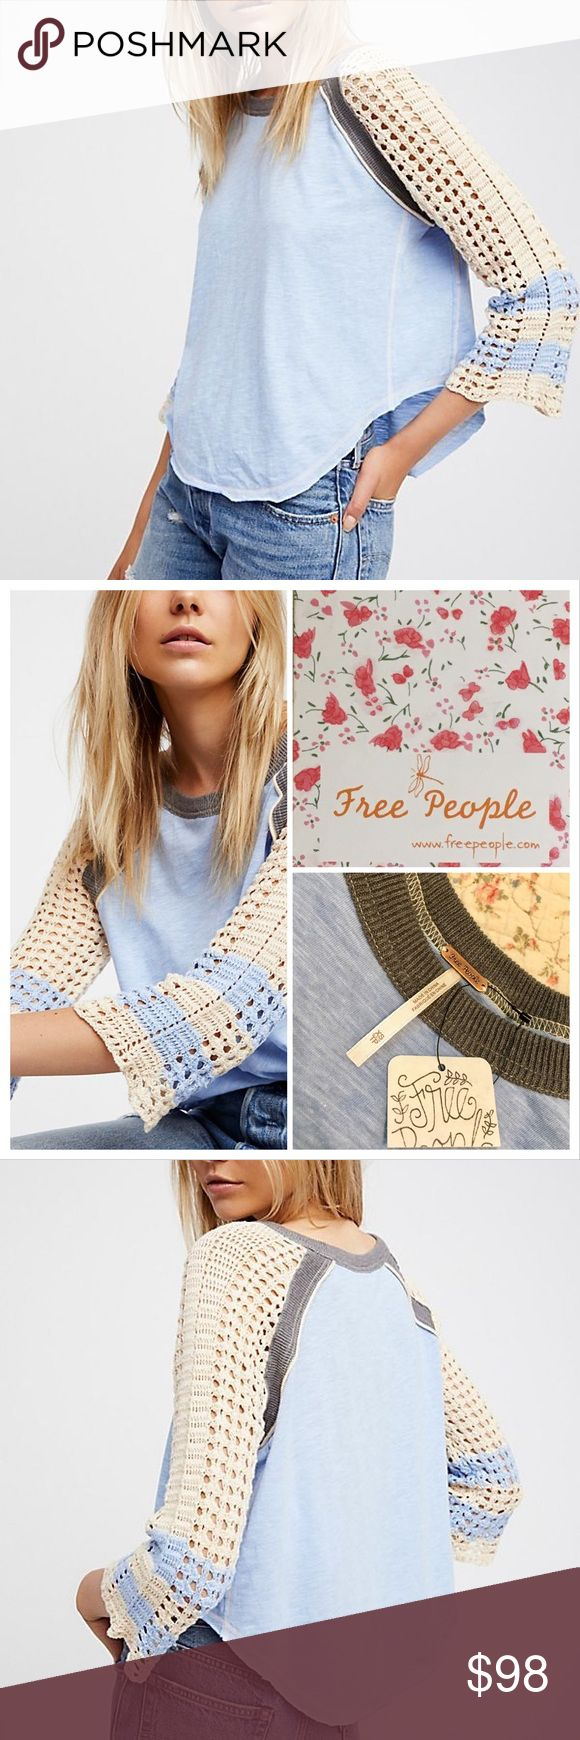 """Free People Finders Keepers Tee New with Tag FP Tee  Details:  Style No. 41675448.   """"Classic baseball tee in Blue with a beautiful, boho-inspired update featuring a Cream Color crochet design at the sleeves.""""  Hand Wash Cold.   Measurements coming Free People Tops"""